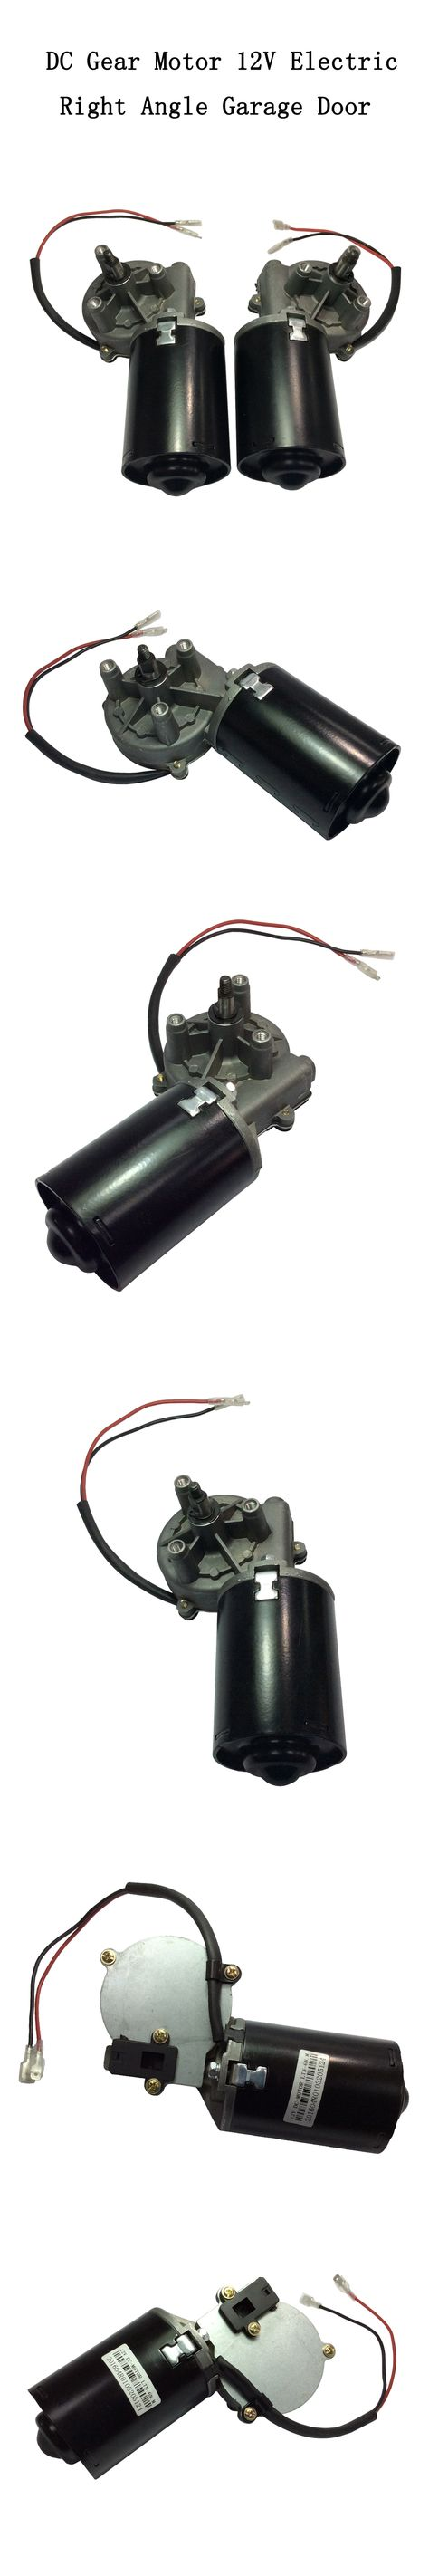 Dc Gear Motor High Torque 6n M Garage Door Raplacement 12v Electric Right Angle Reversible Worm Gear Motor Left Gear Box Motores